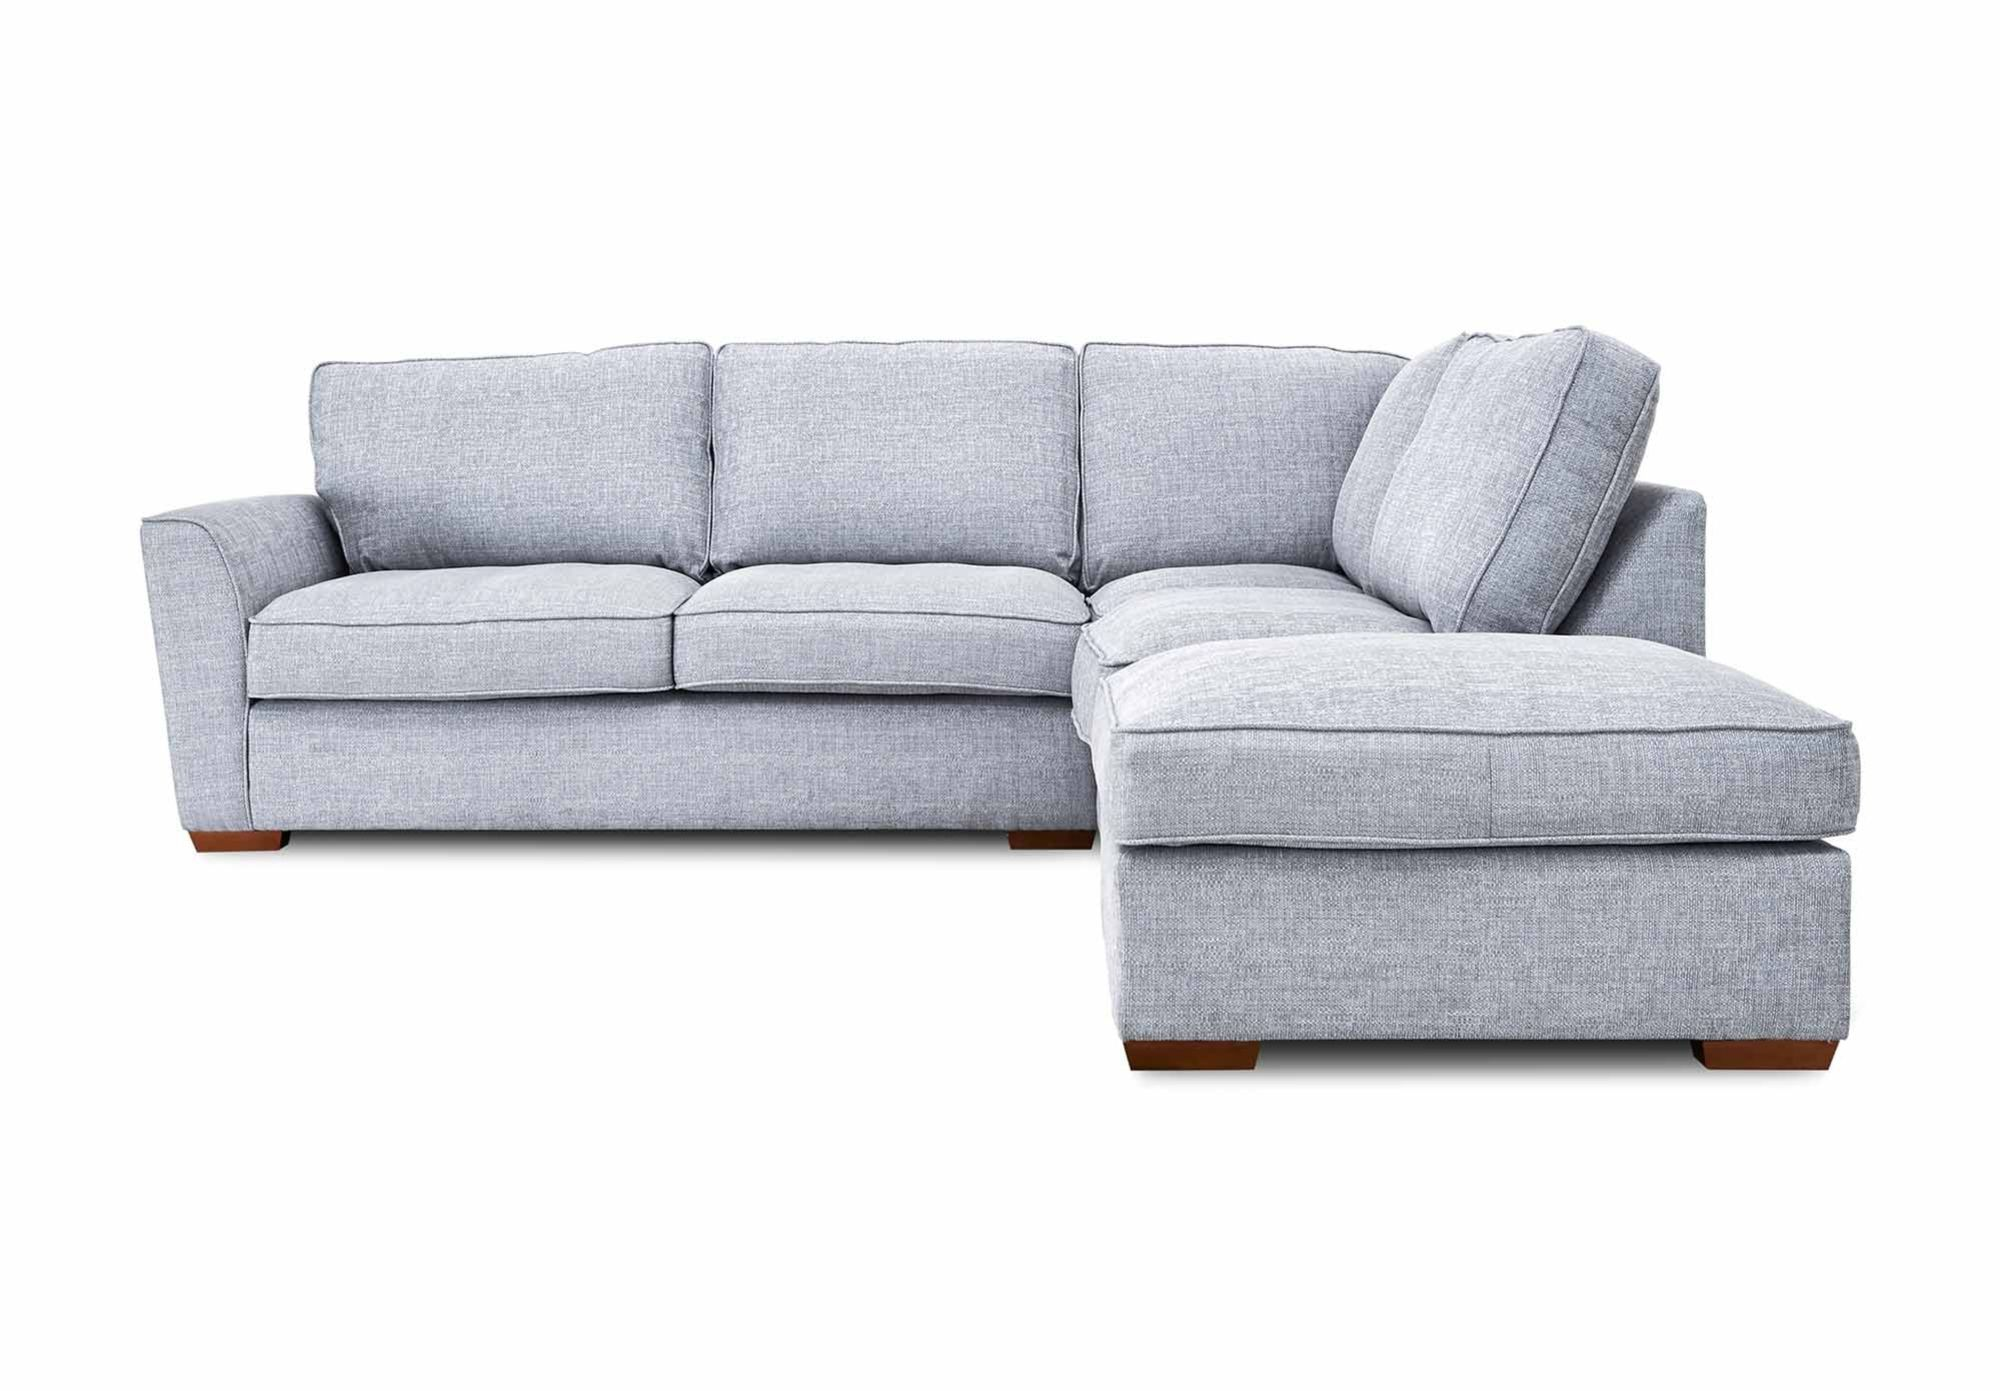 Rhf Classic Back Corner Sofa Fable Gorgeous Living Room Furniture From Furniture Village Corner Sofa Corner Sofa Chaise Living Room Furniture Sofas